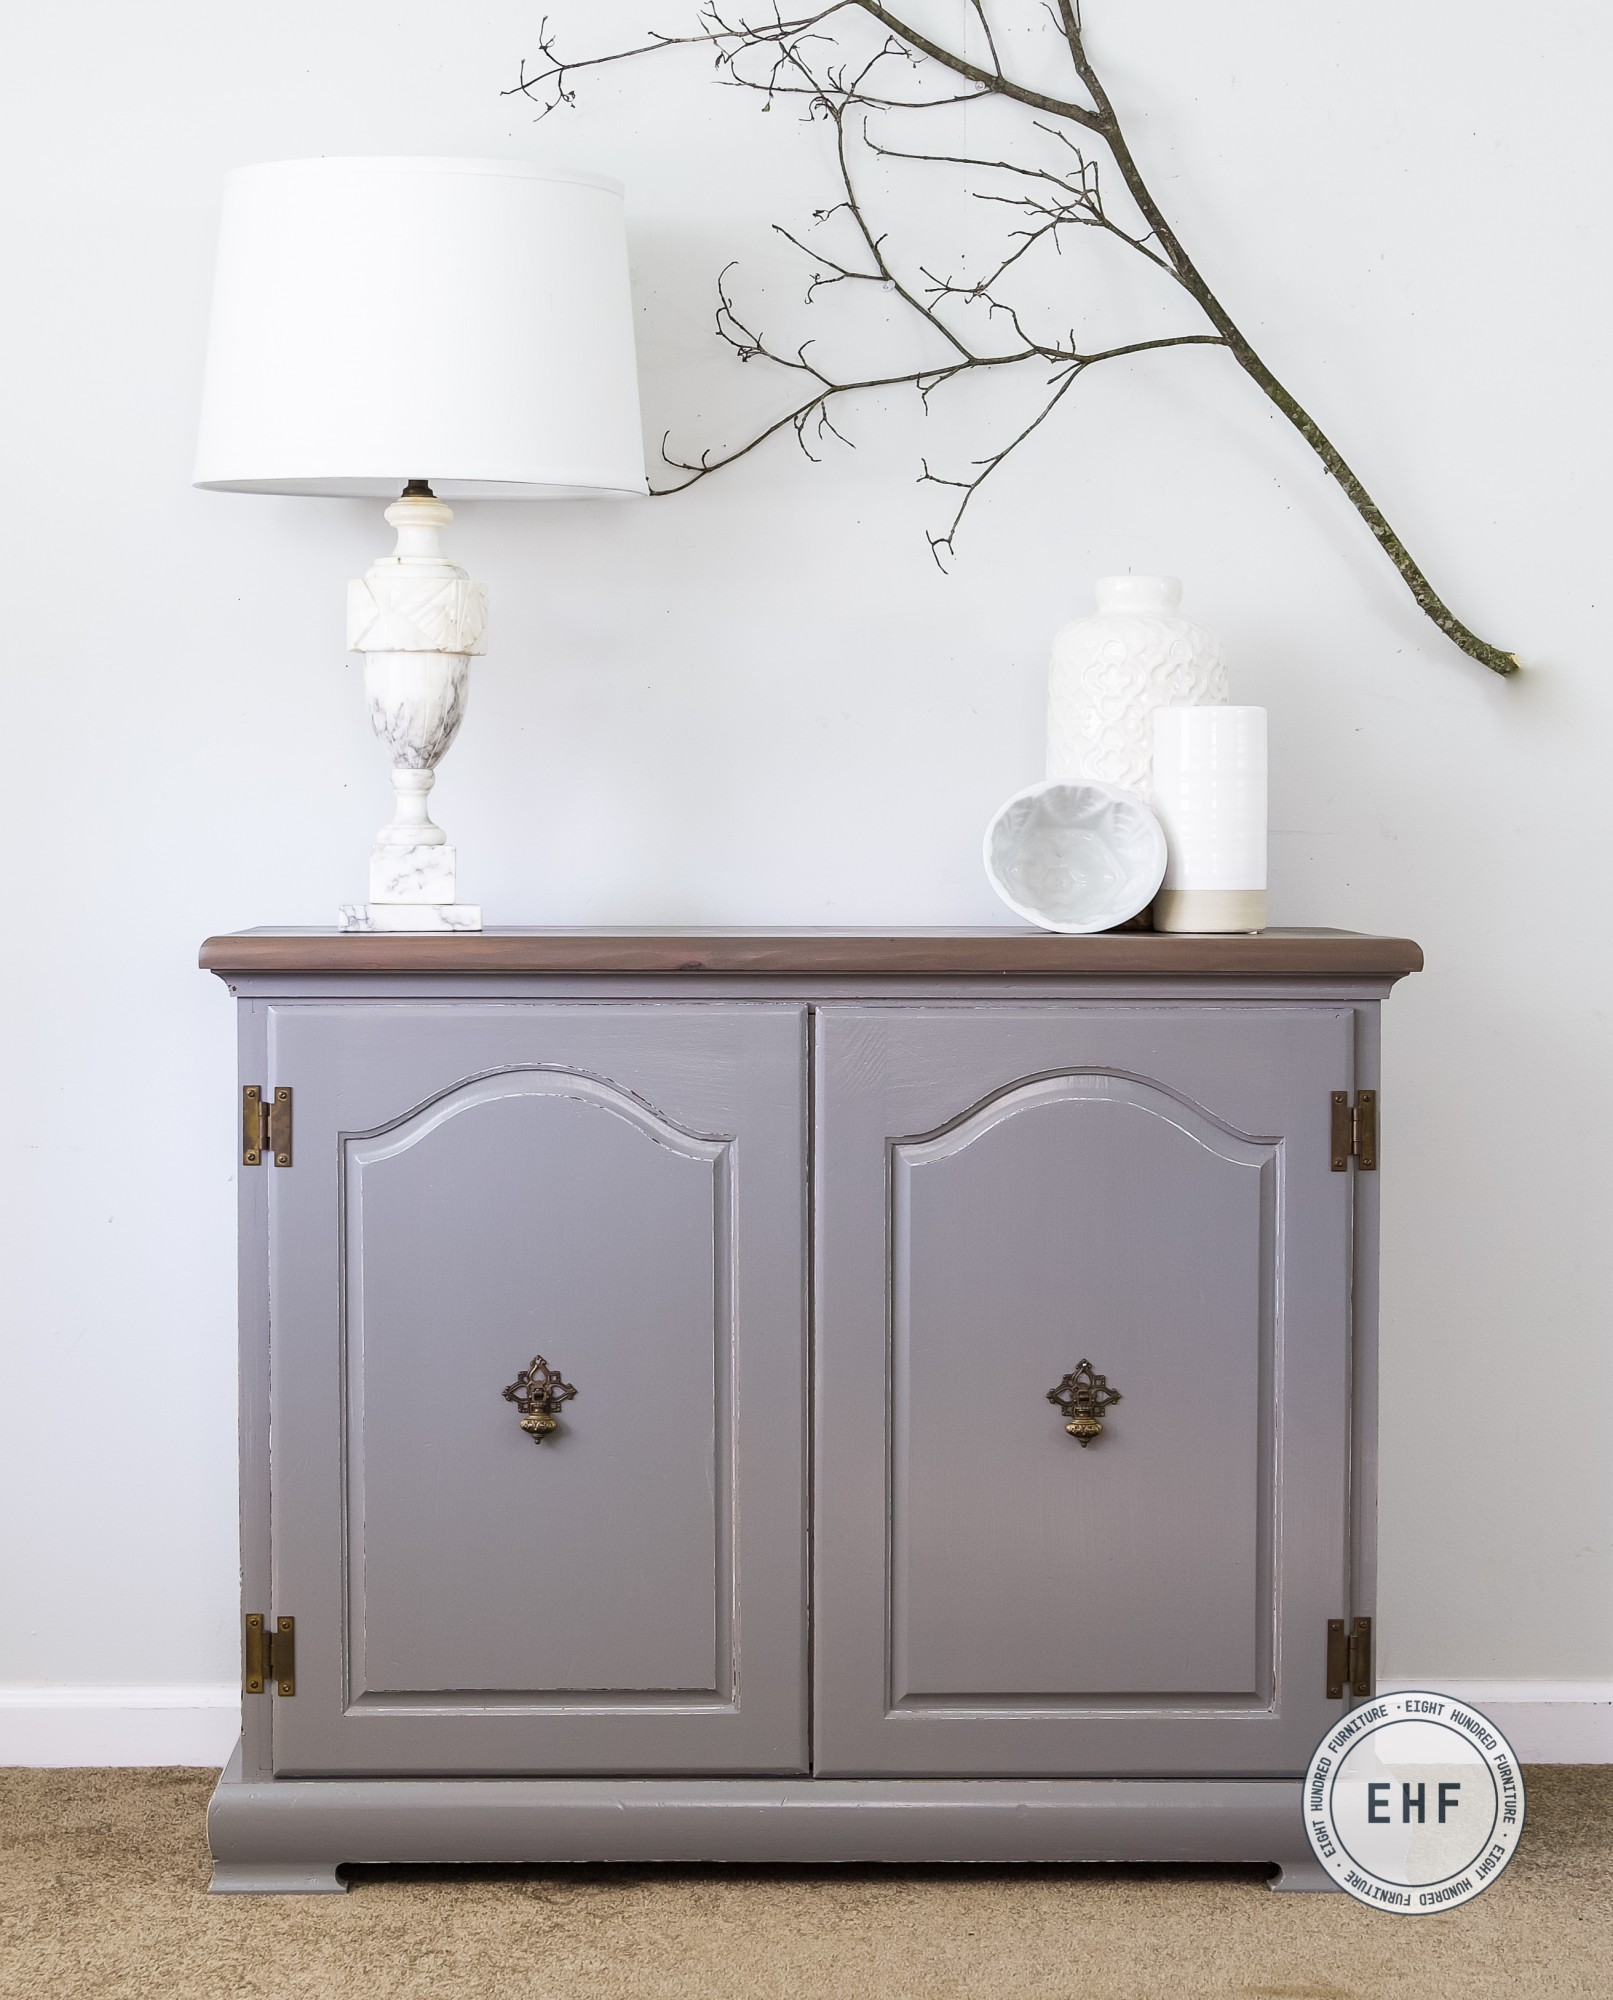 General Finishes, Water Based Wood Stain, Graystone, Eight Hundred Furniture, Perfect Gray Milk Paint, General Finishes Milk Paint, Eight Hundred Furniture, Alabaster Lamp